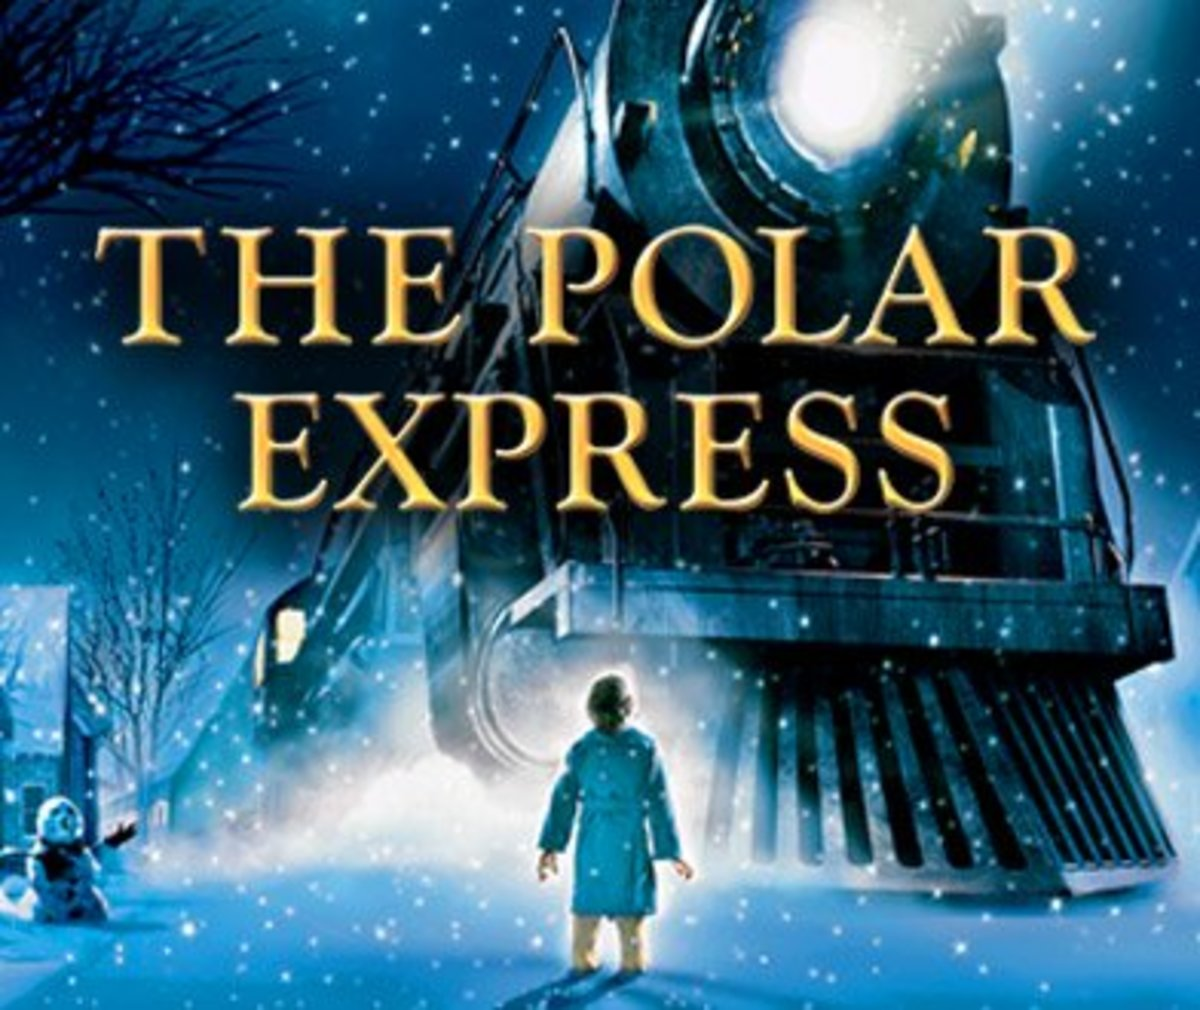 The Polar Express (2004); Starring: Tom Hanks  Leslie Zemeckis, & Eddie Deezen